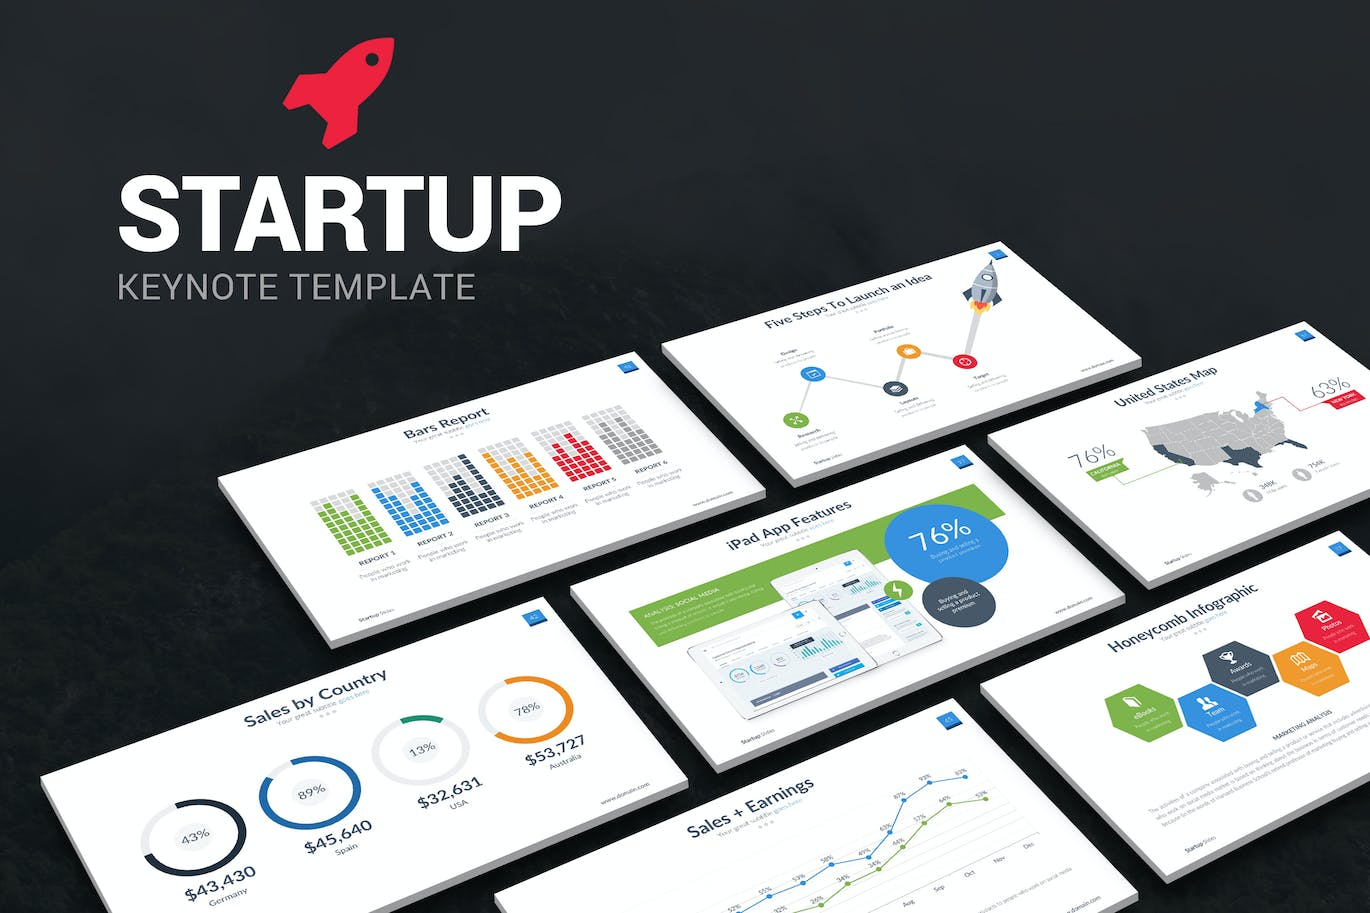 Startup Keynote Template By Slidefusion On Envato Elements